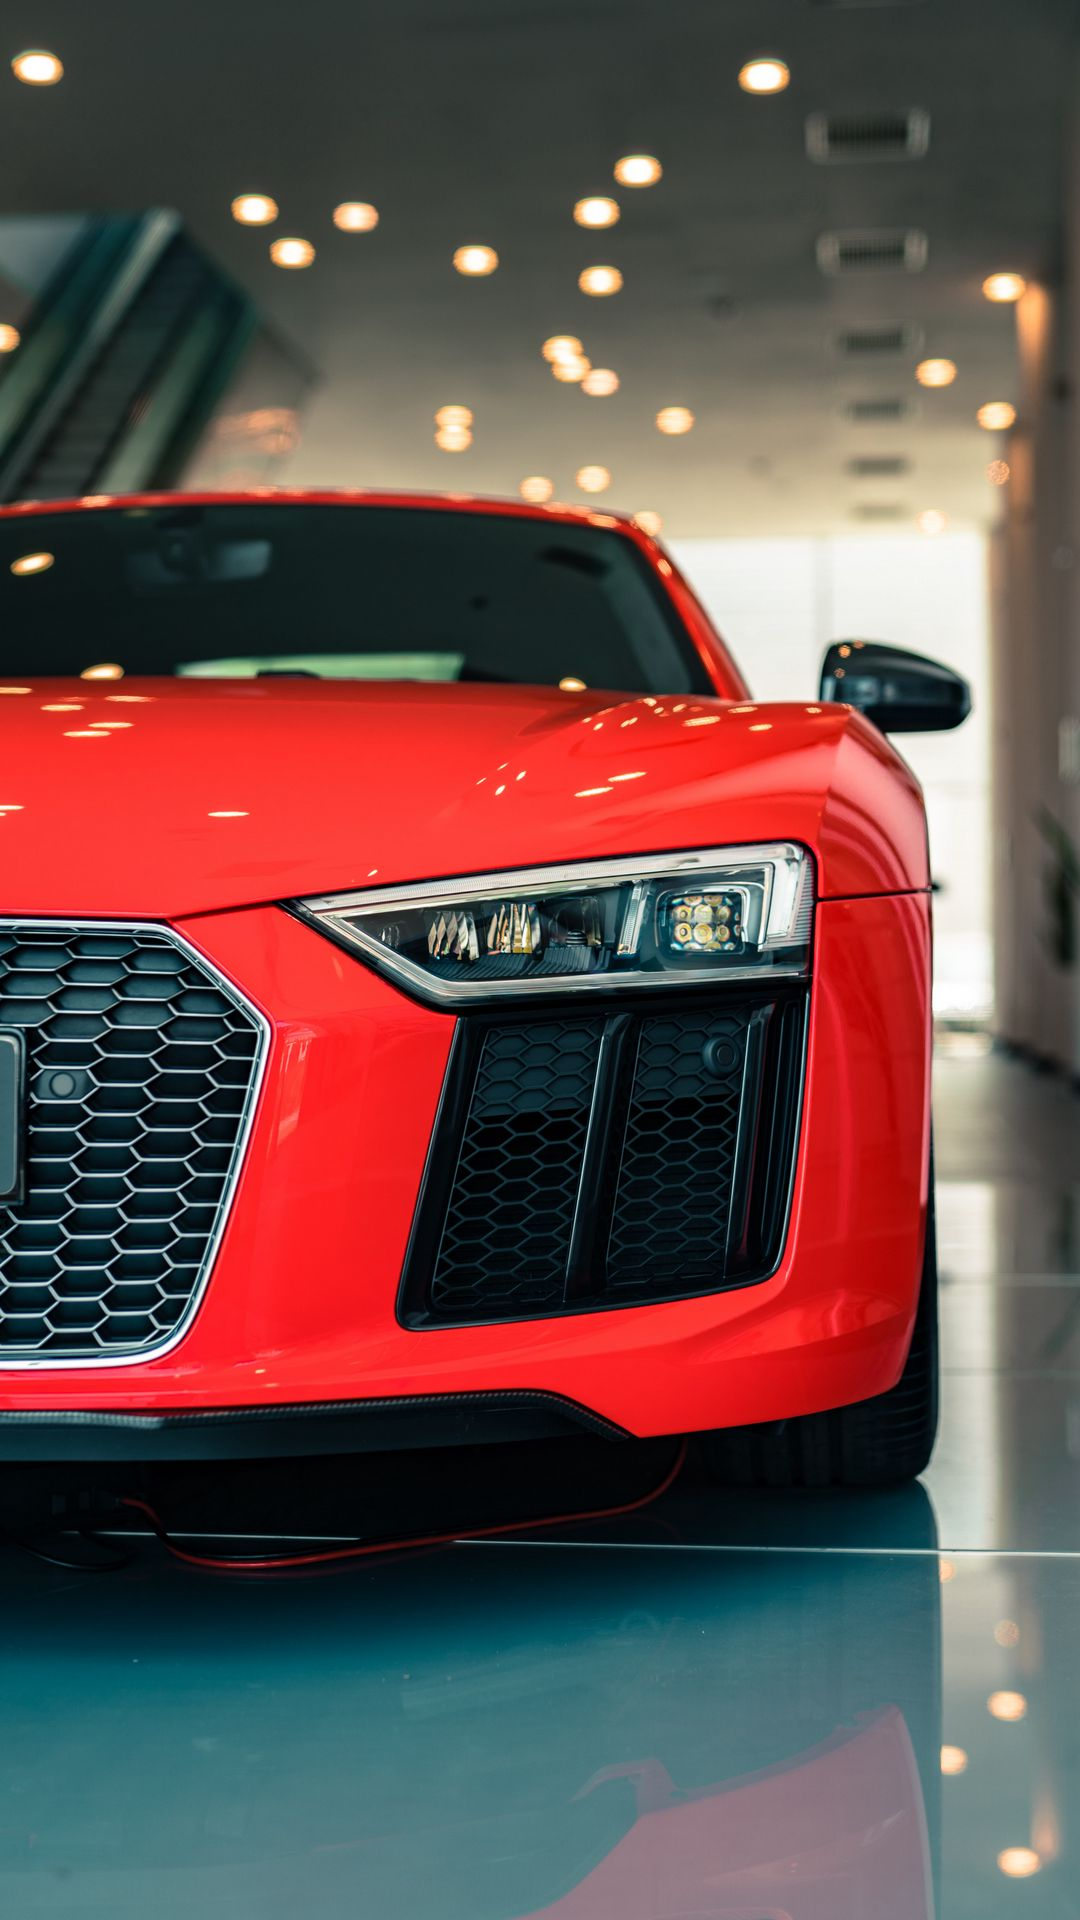 Audi Wallpapers Download for Phone & iPhone